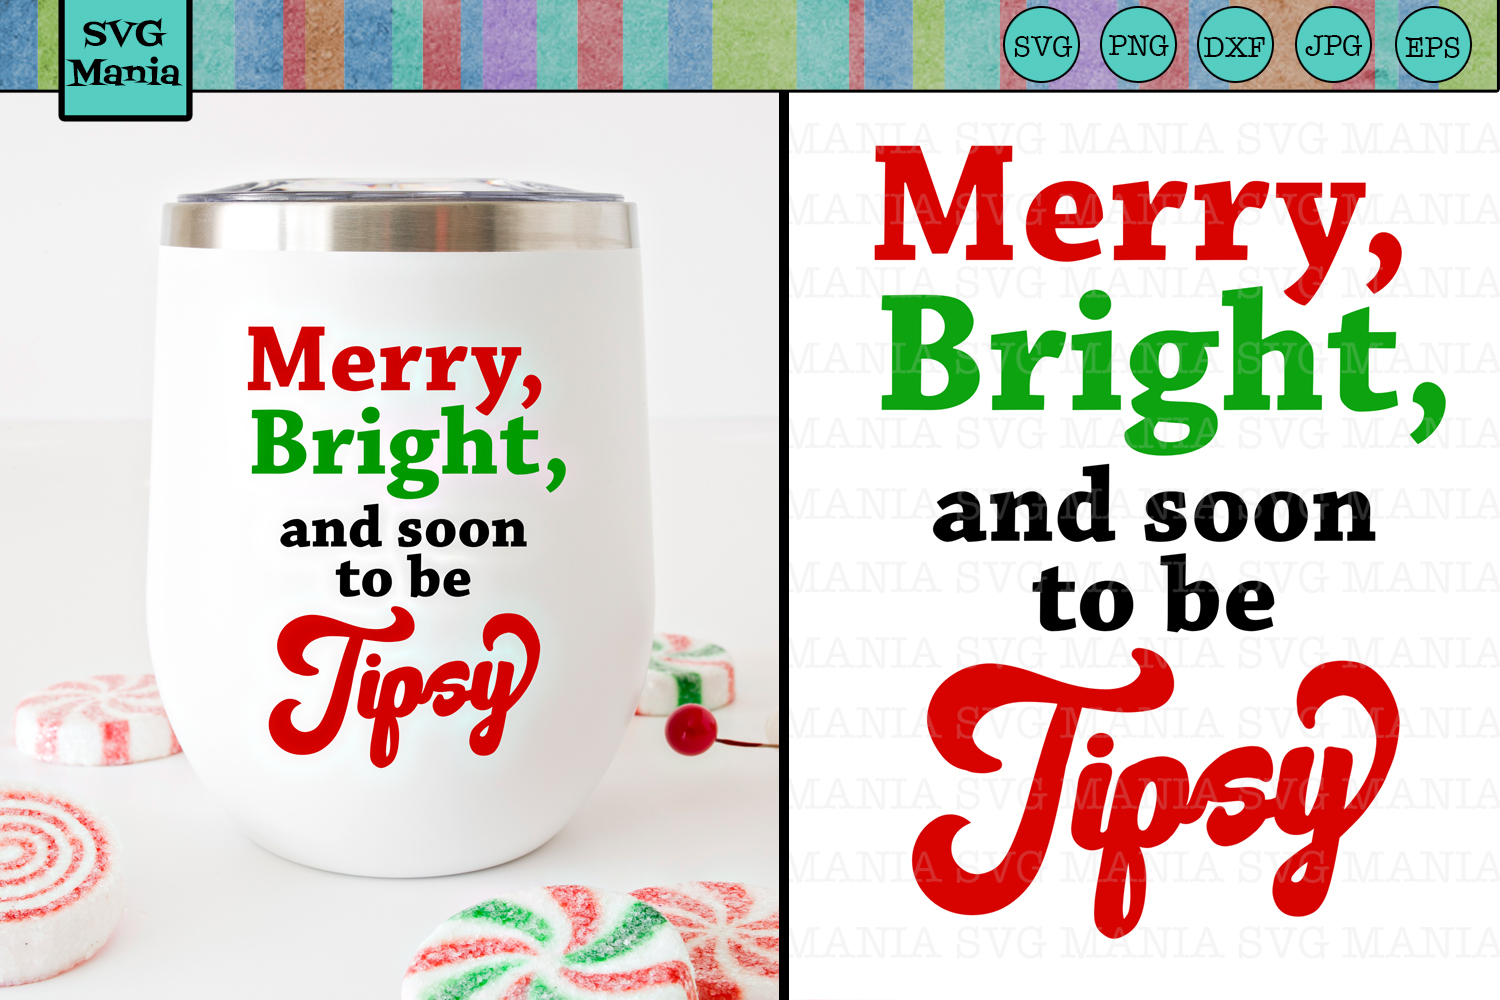 Christmas Wine Glass SVG File, Funny Wine Glass Decal SVG example image 1